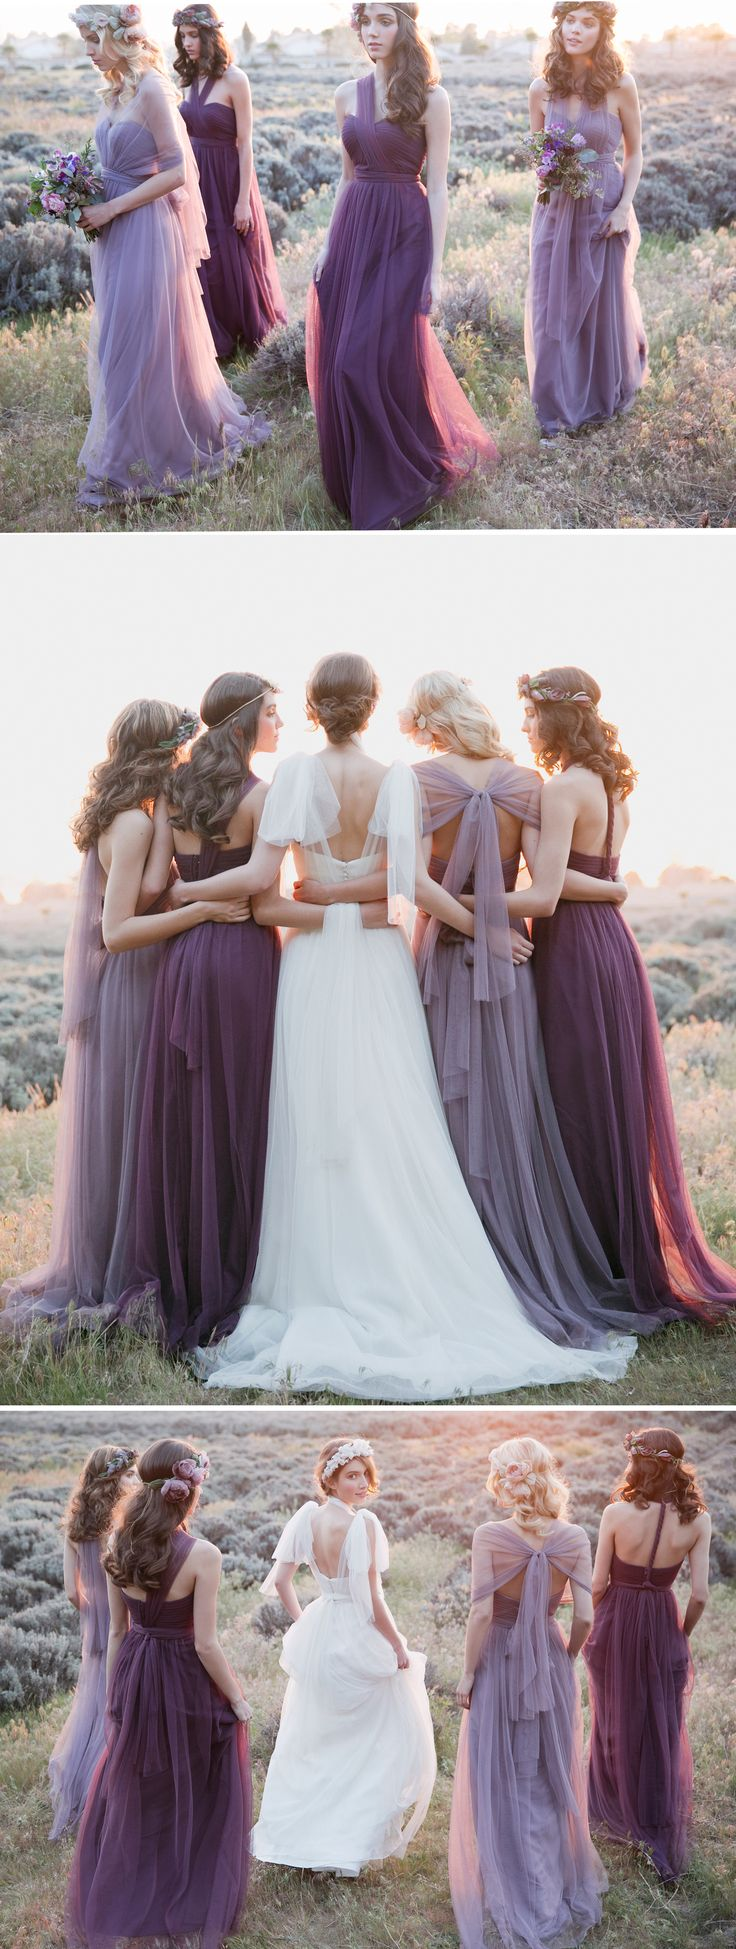 Convertible NABI Collection by Jenny Yoo //  Annabelle Dress in Lilac and Raisin Tulle // Hathaway Convertible Bridal Gown